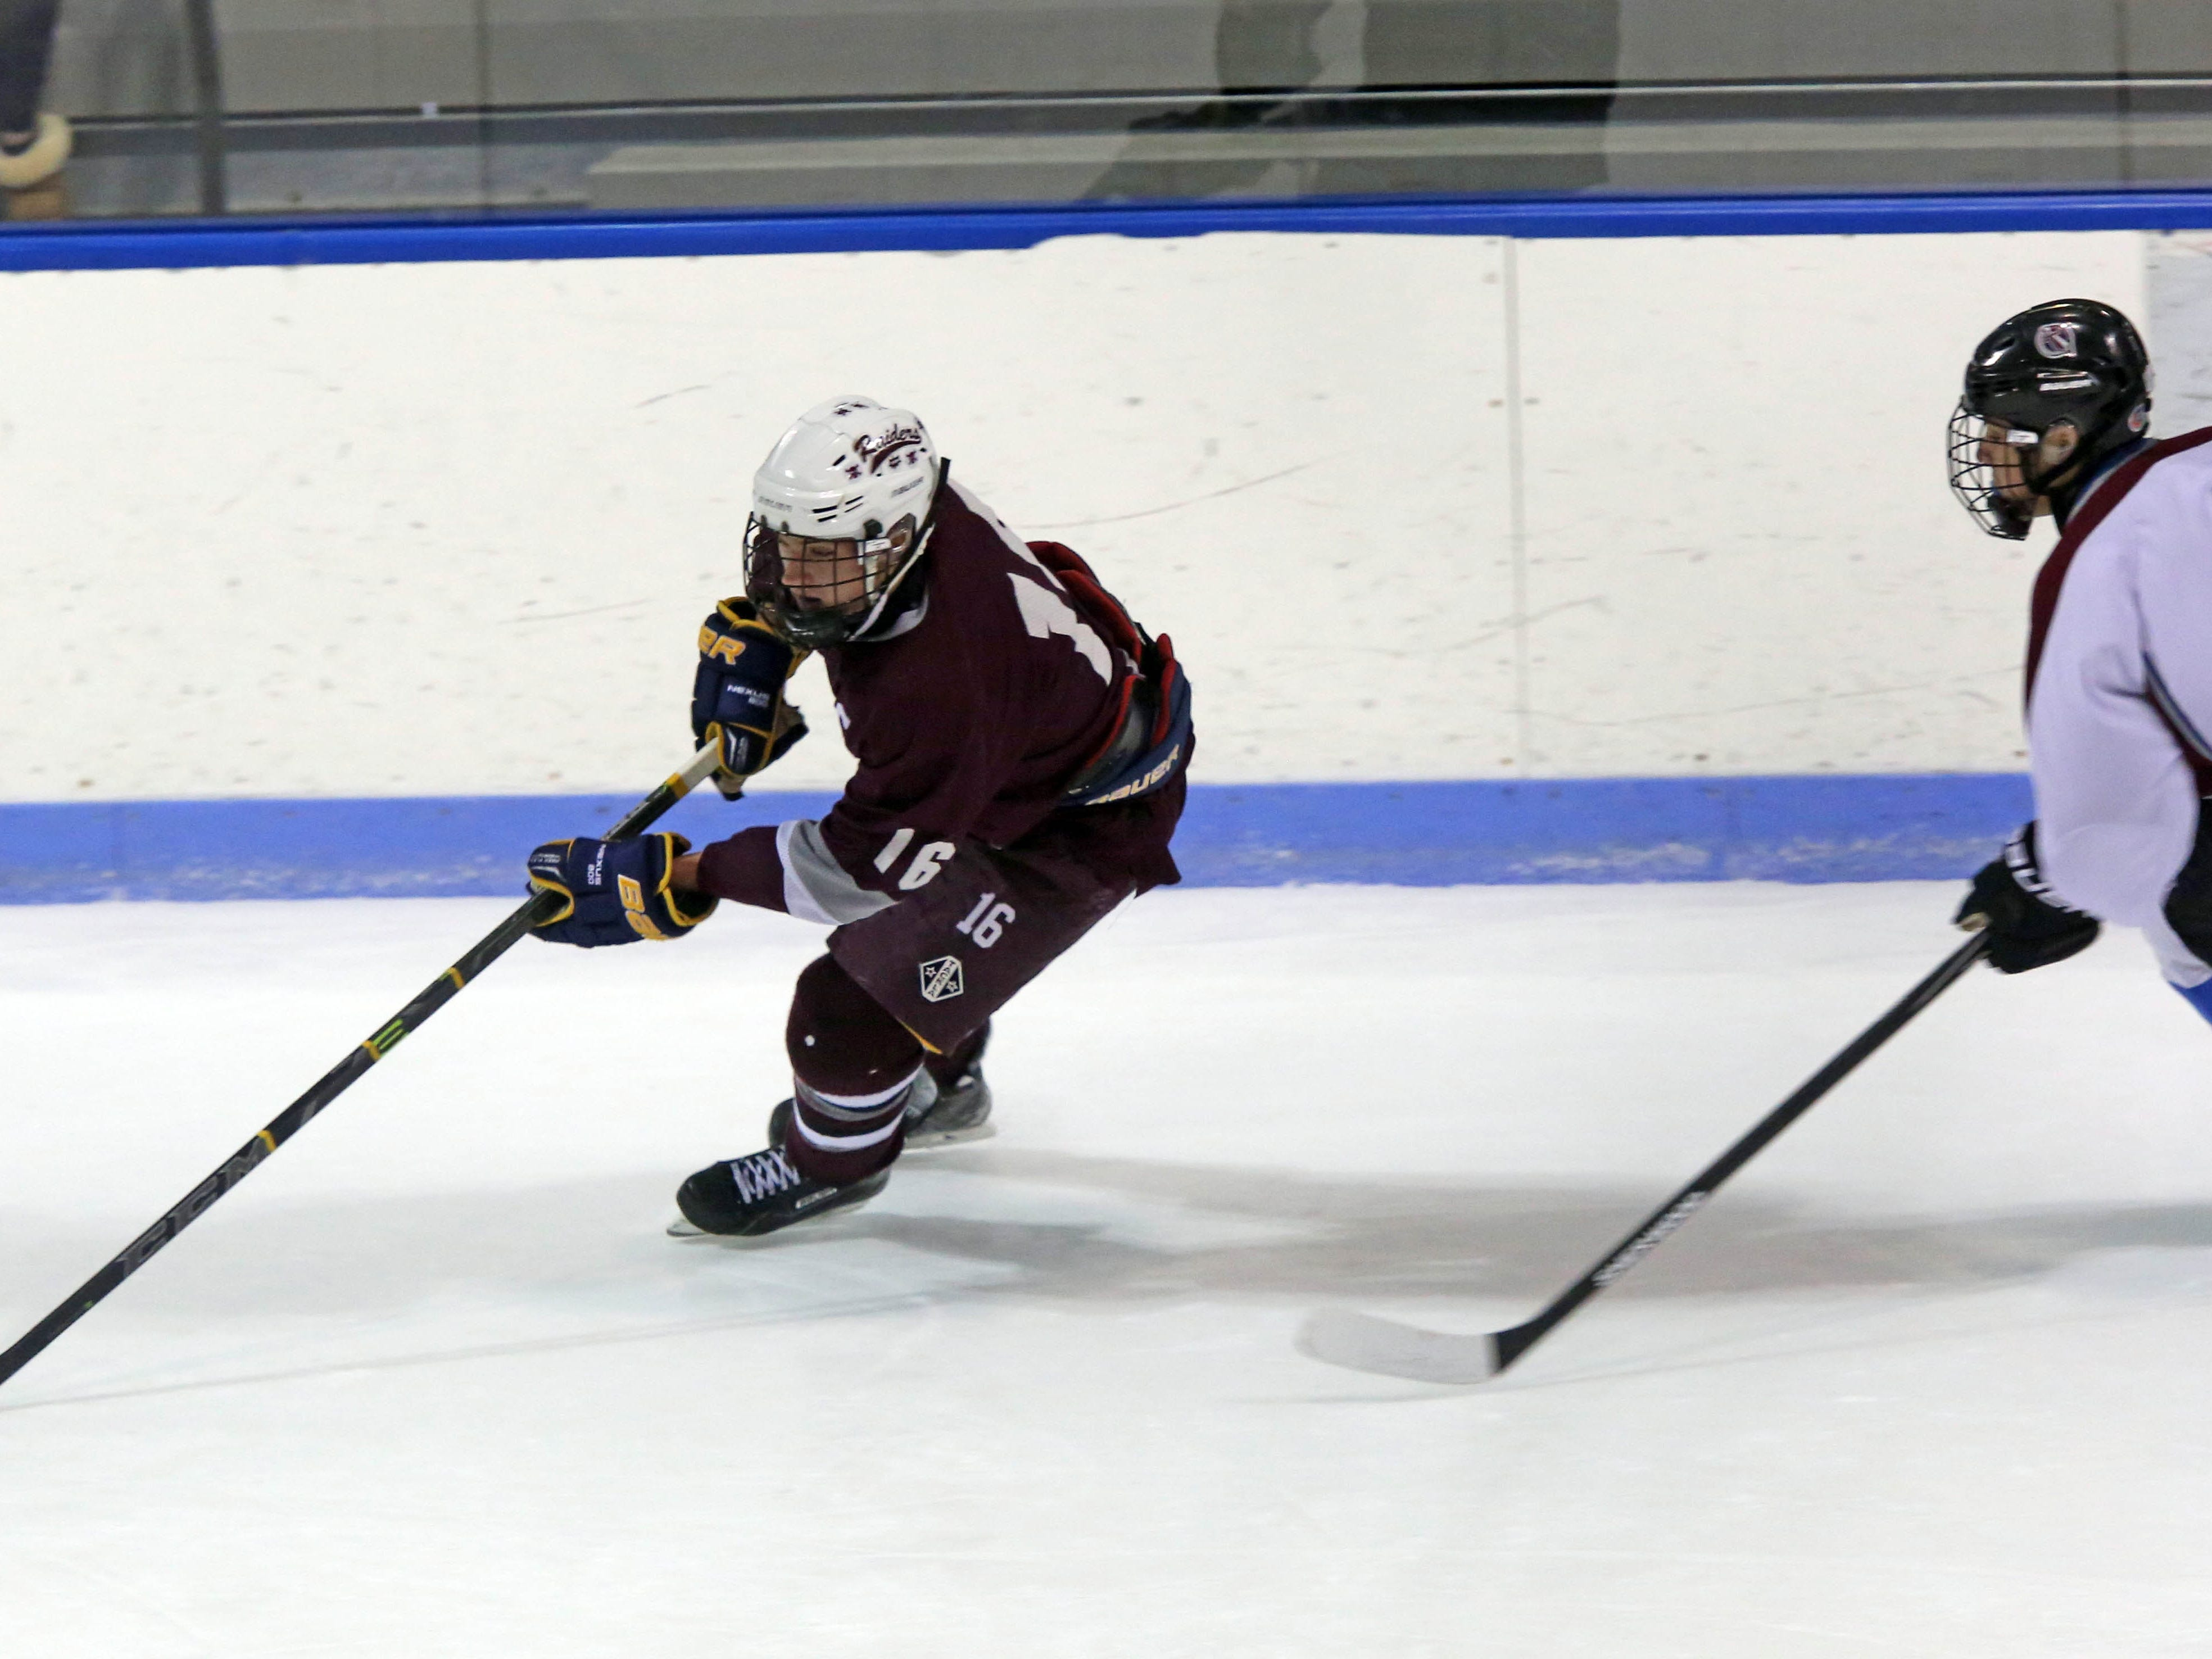 Scarsdale's James Nicholas (16) gains control of the puck over Rye Town/Harrison's Ike Murov (4) during boys hockey at Rye Playland on Jan. 12, 2015.